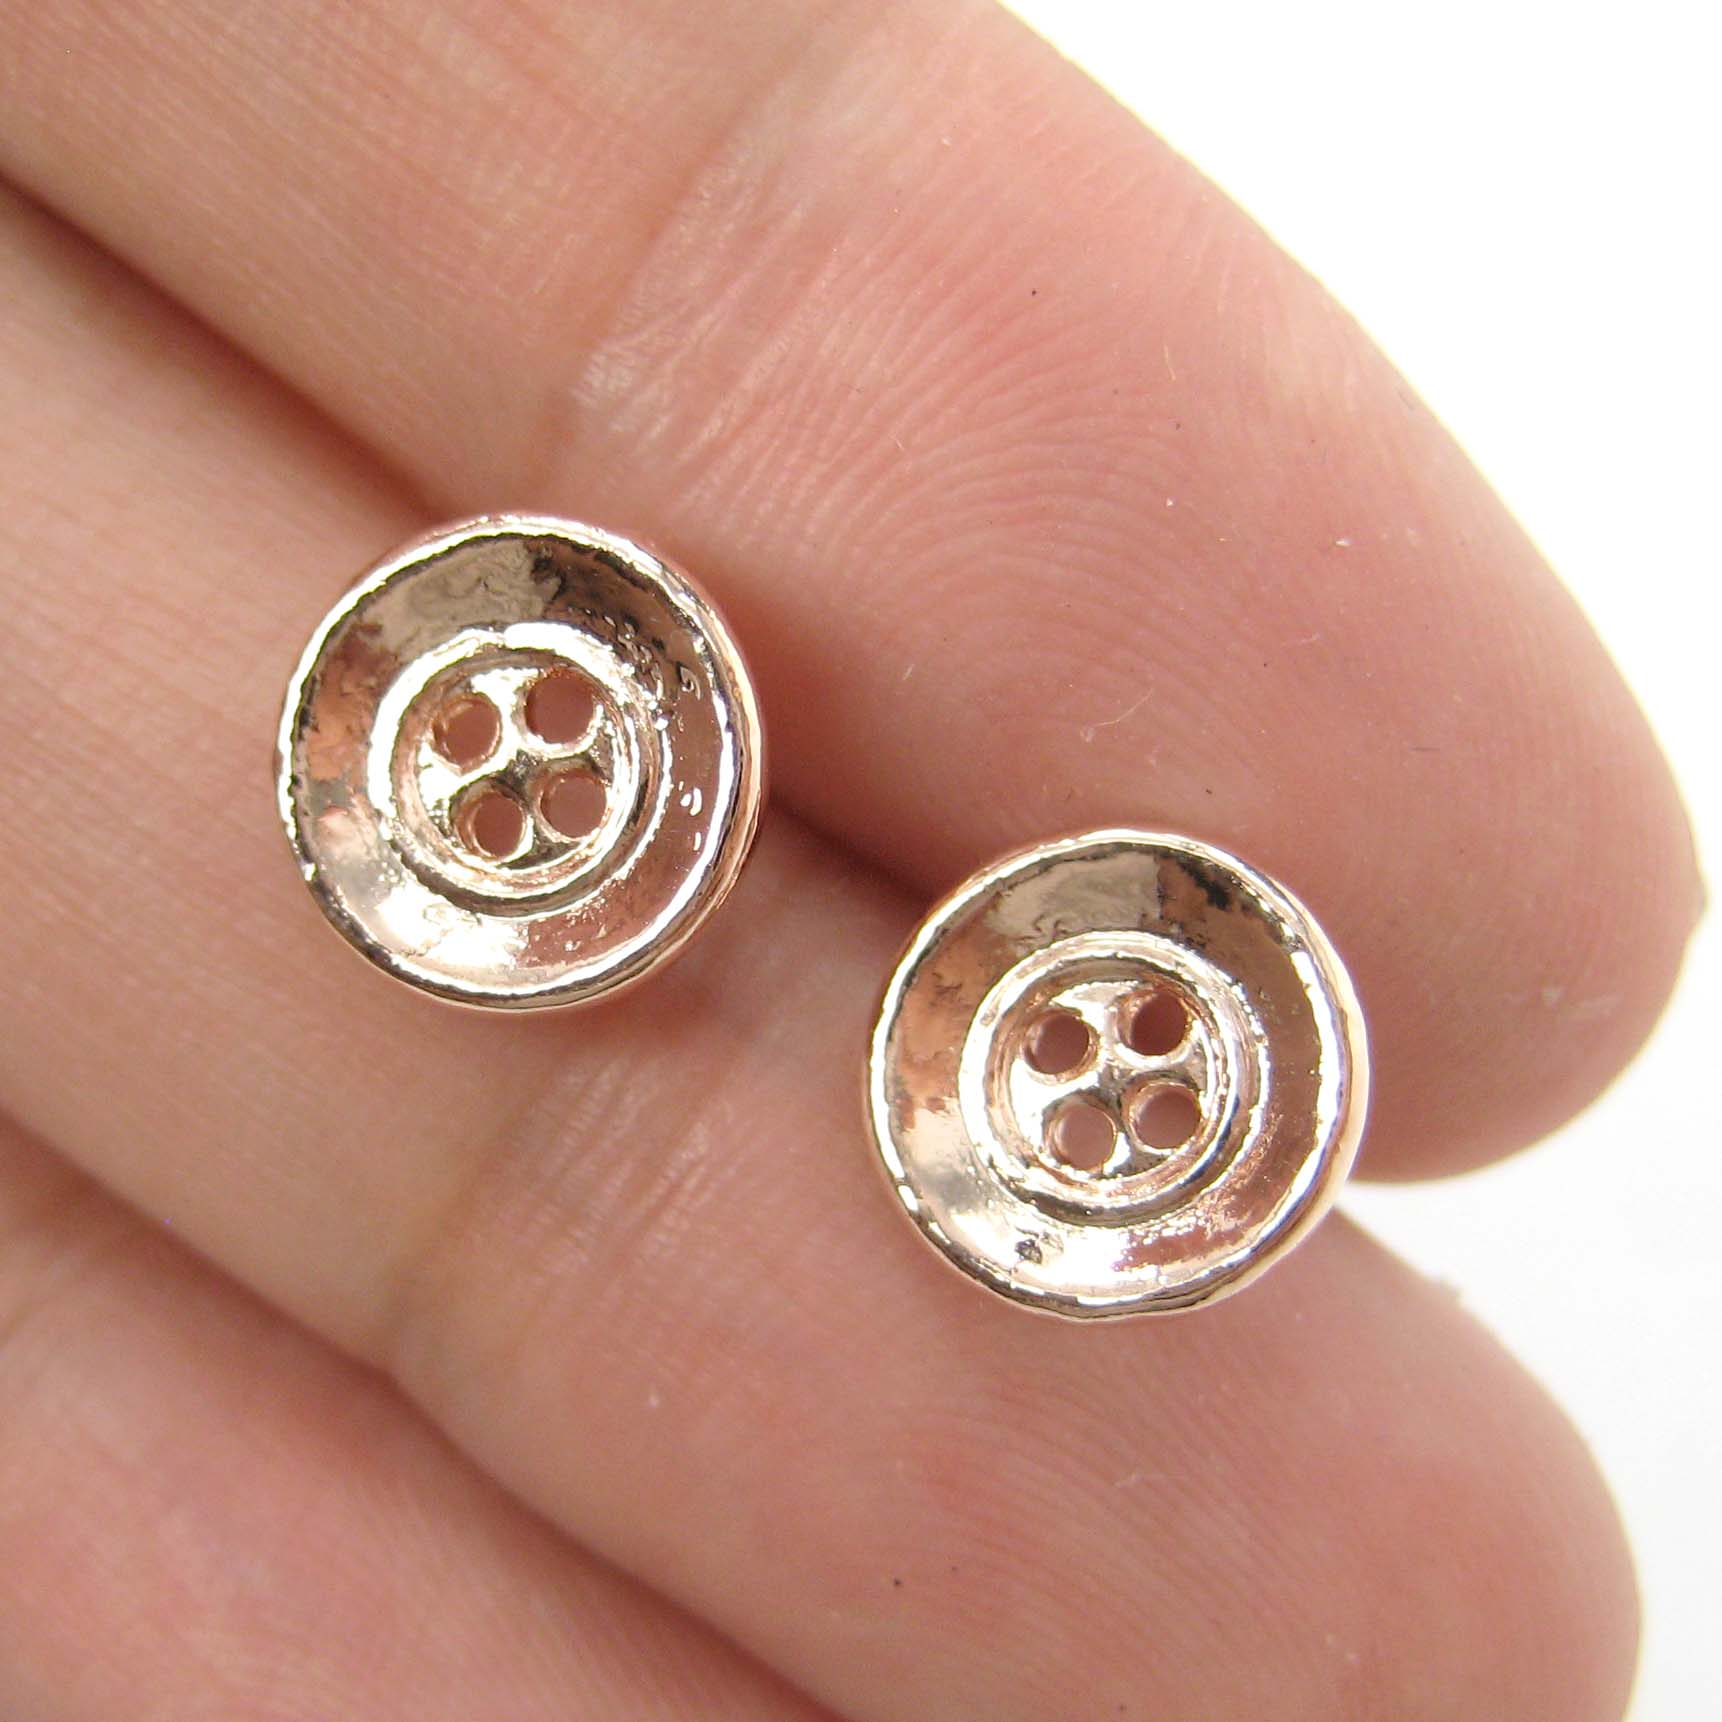 Gemstone Stud Earring 925 Sterling Silver with Gemstone Flat Oval for woman - Milky Way Jewelry